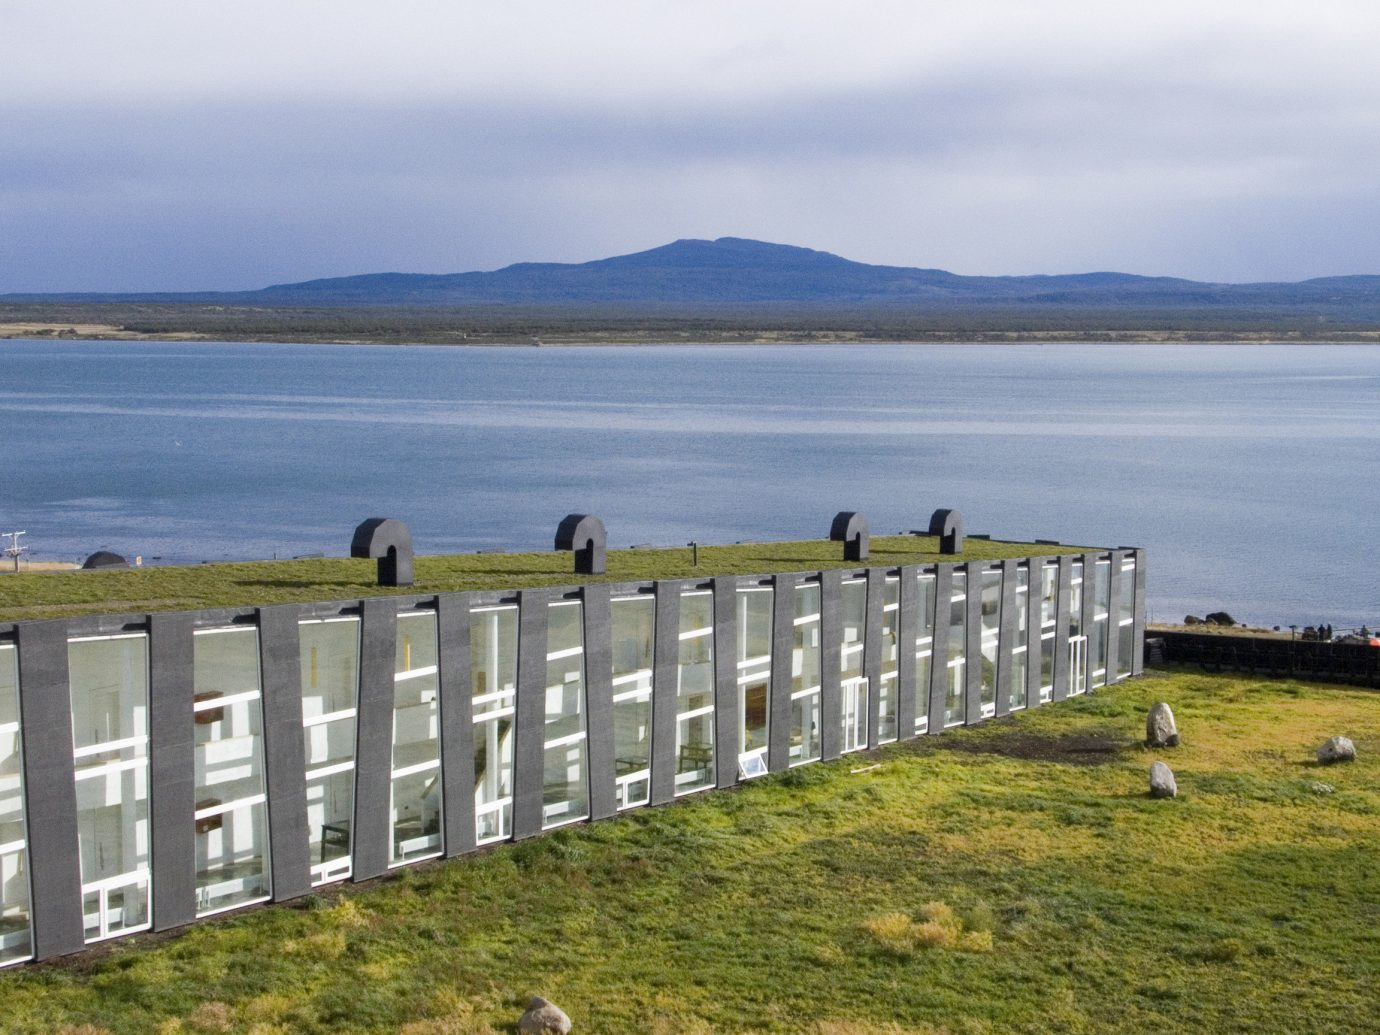 Hotels grass sky water outdoor shore Coast body of water overlooking Sea Lake loch reservoir bay flock pasture lush